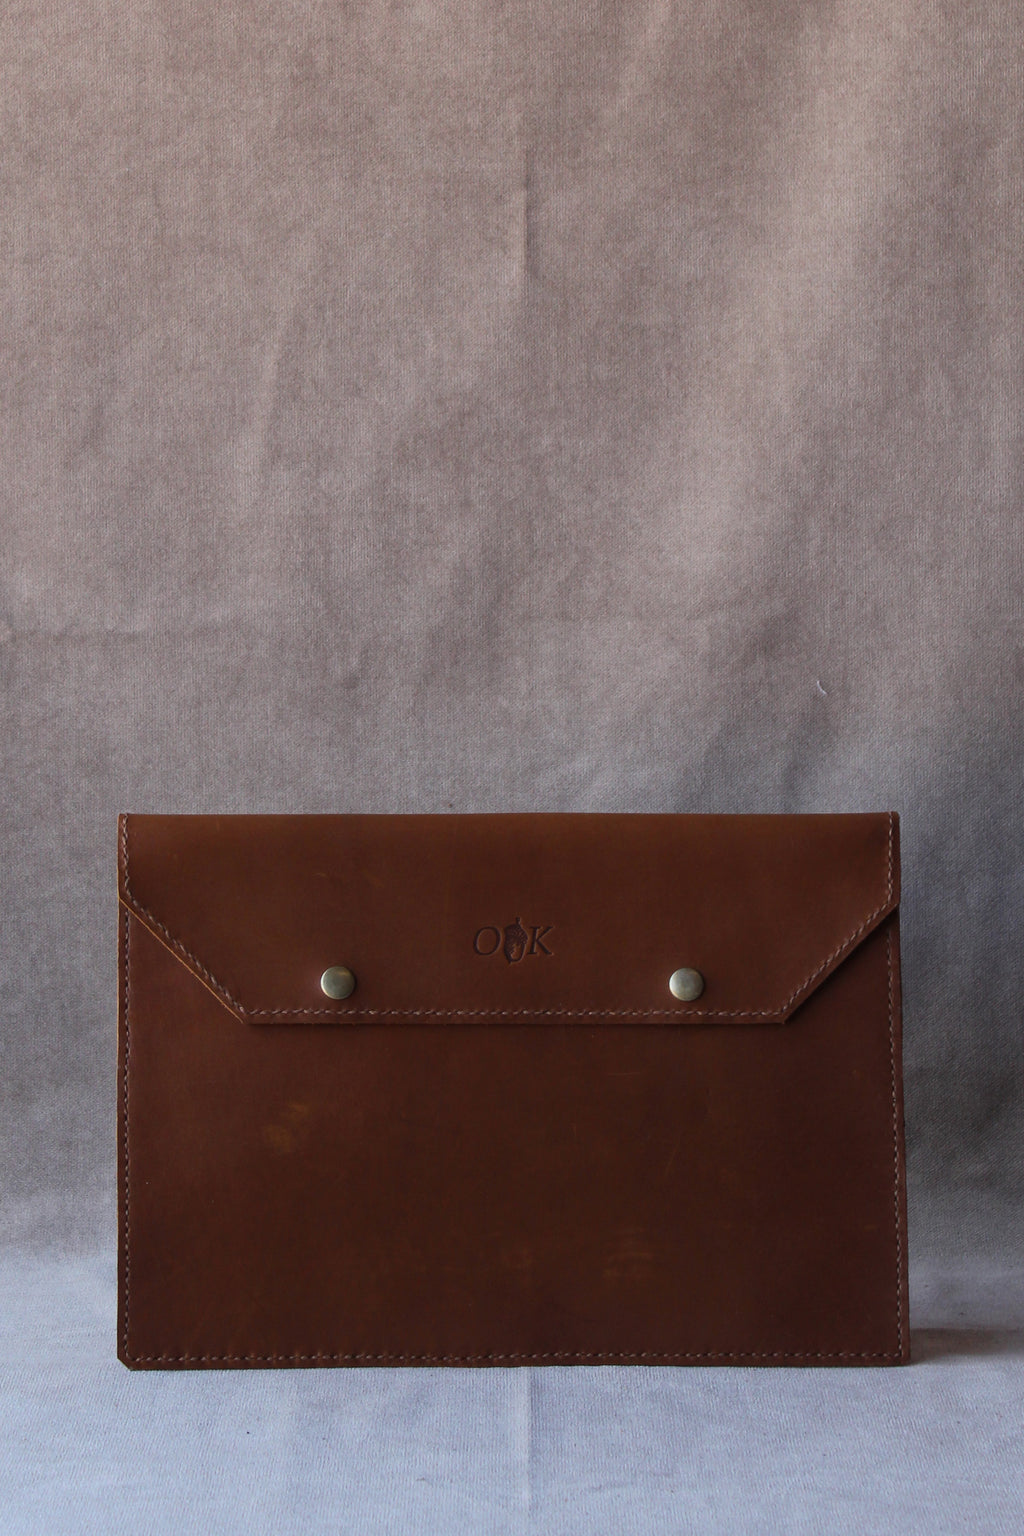 a photo of the a4 leather folder